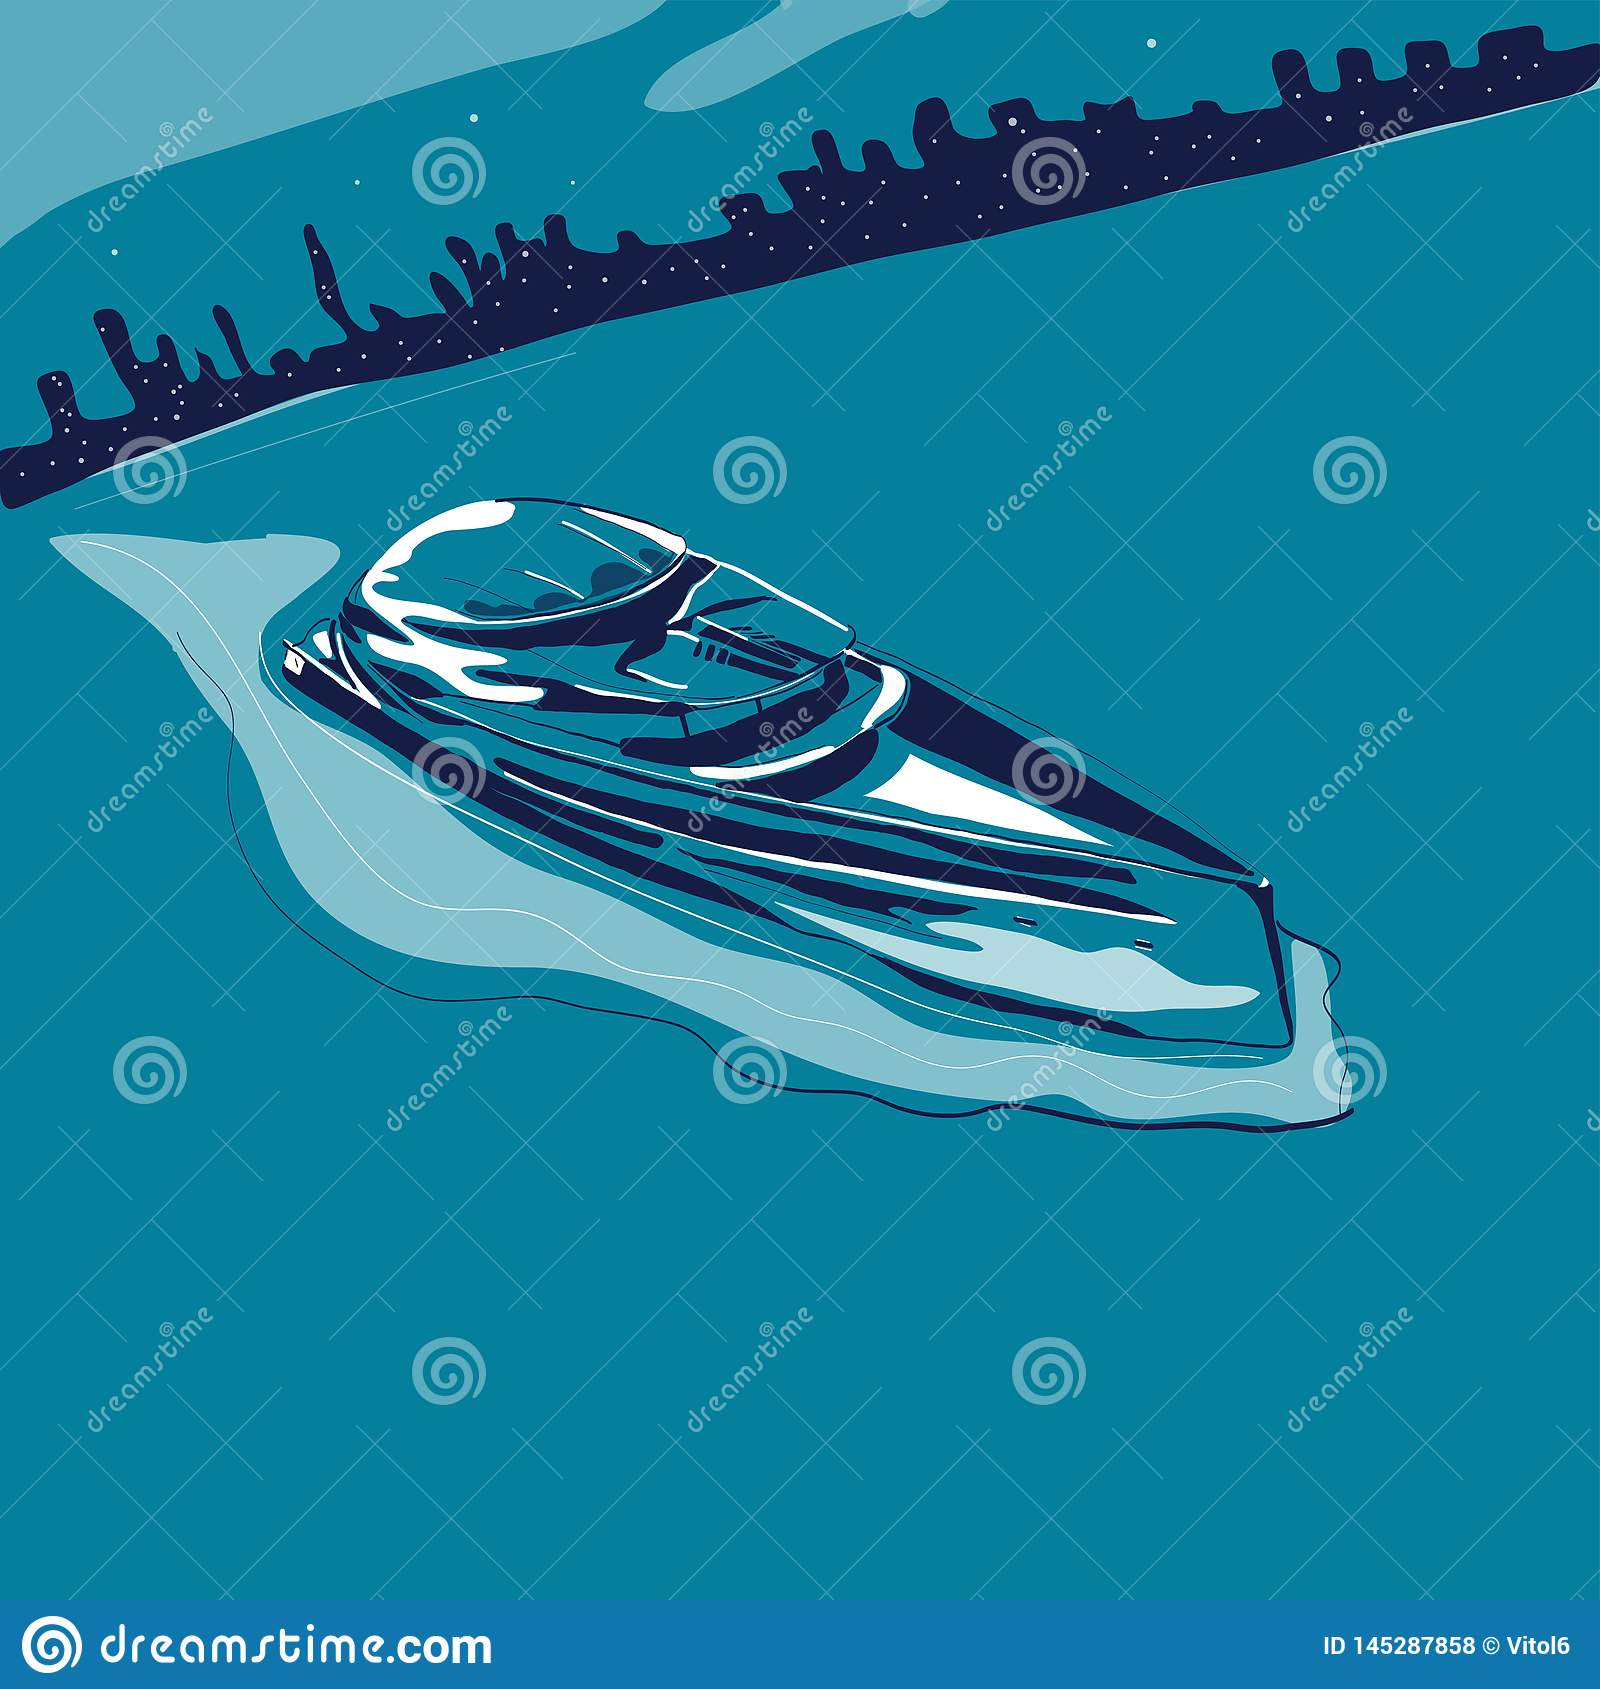 Modern yacht sailing in sea on background of night city vector